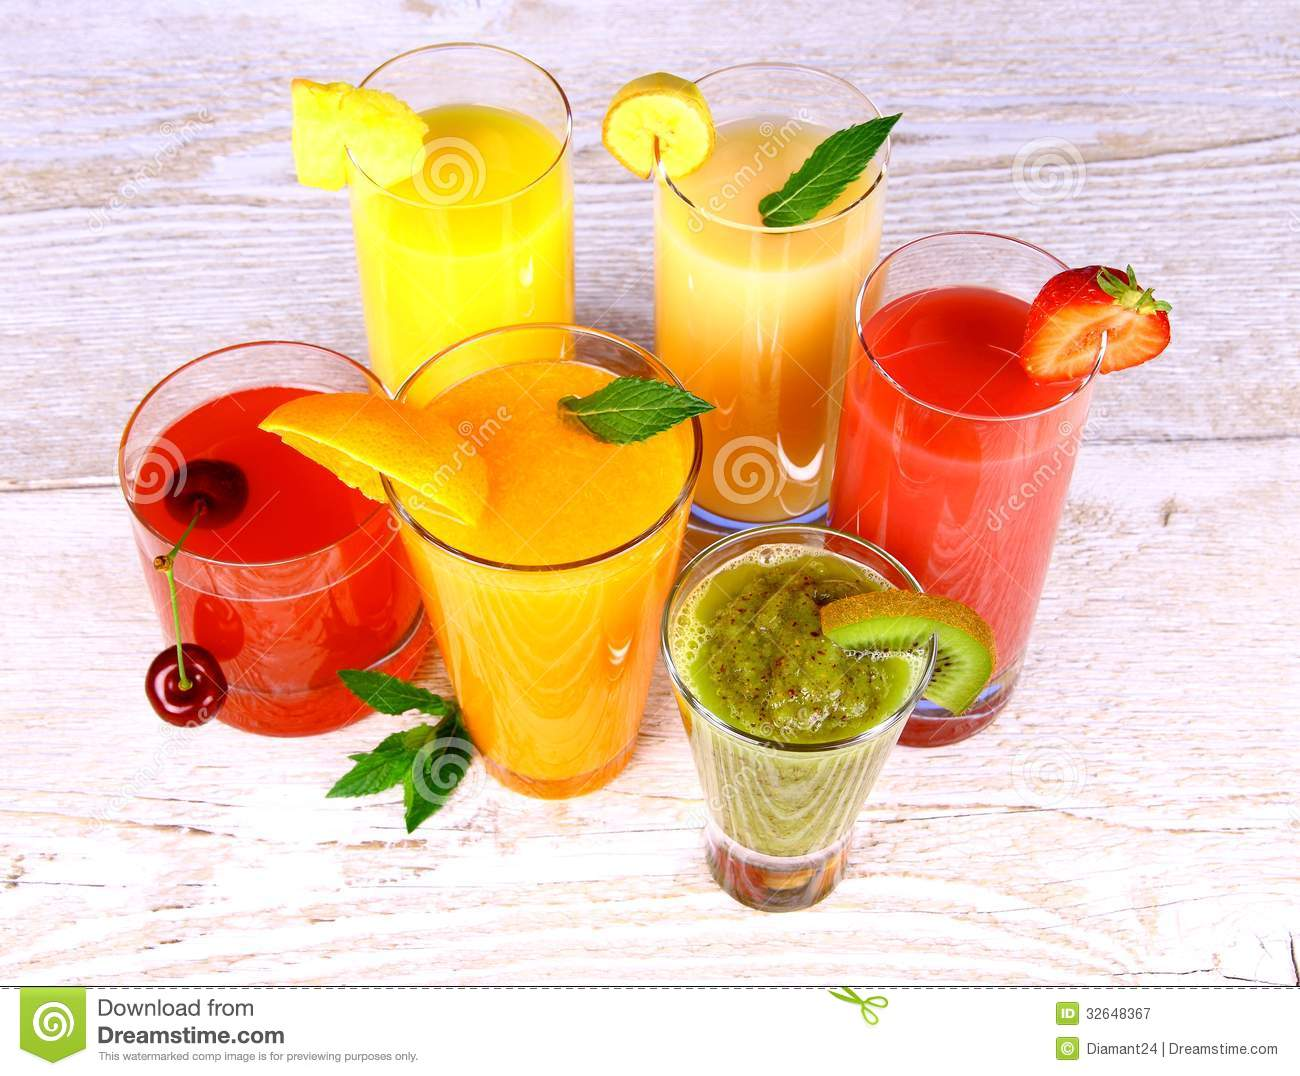 Fruit juices, kiwi, cherry, orange, strawberry, banana, pineapple